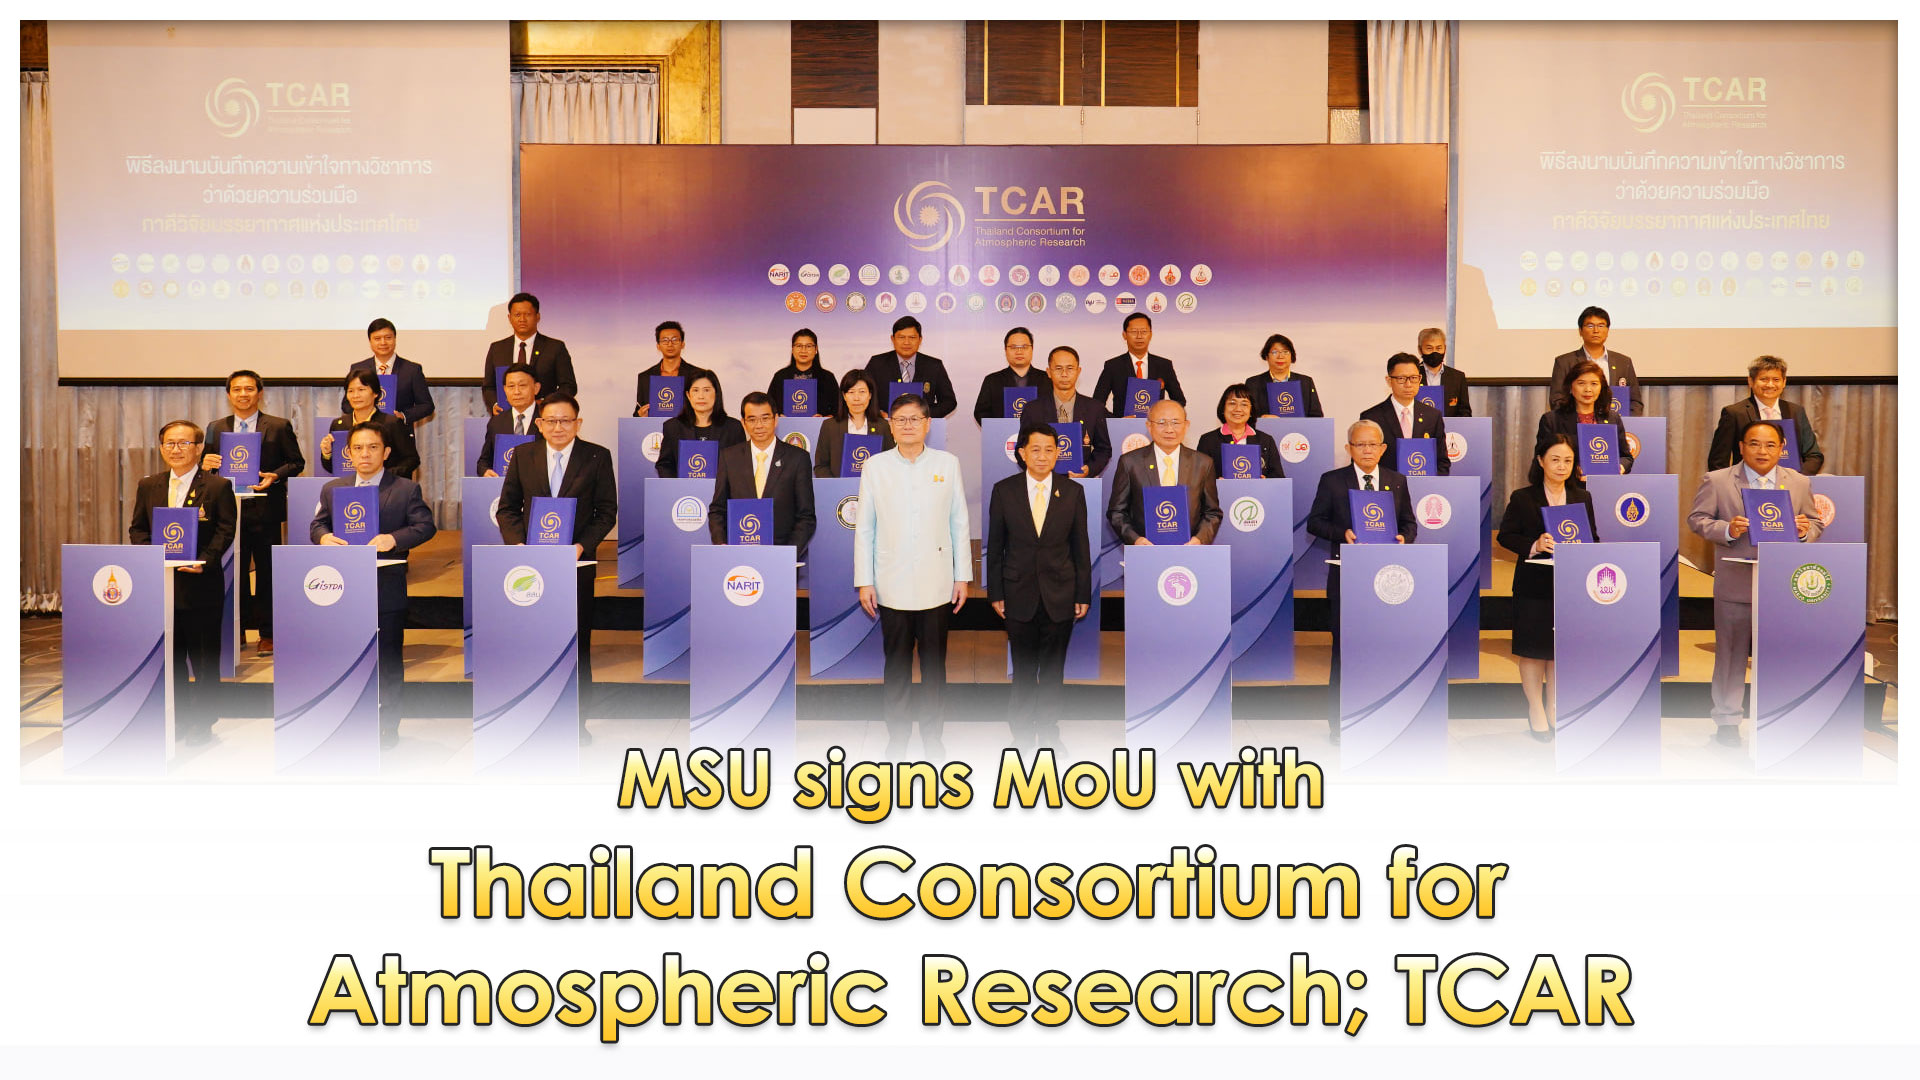 MSU signs MoU with Thailand Consortium for Atmospheric Research; TCAR